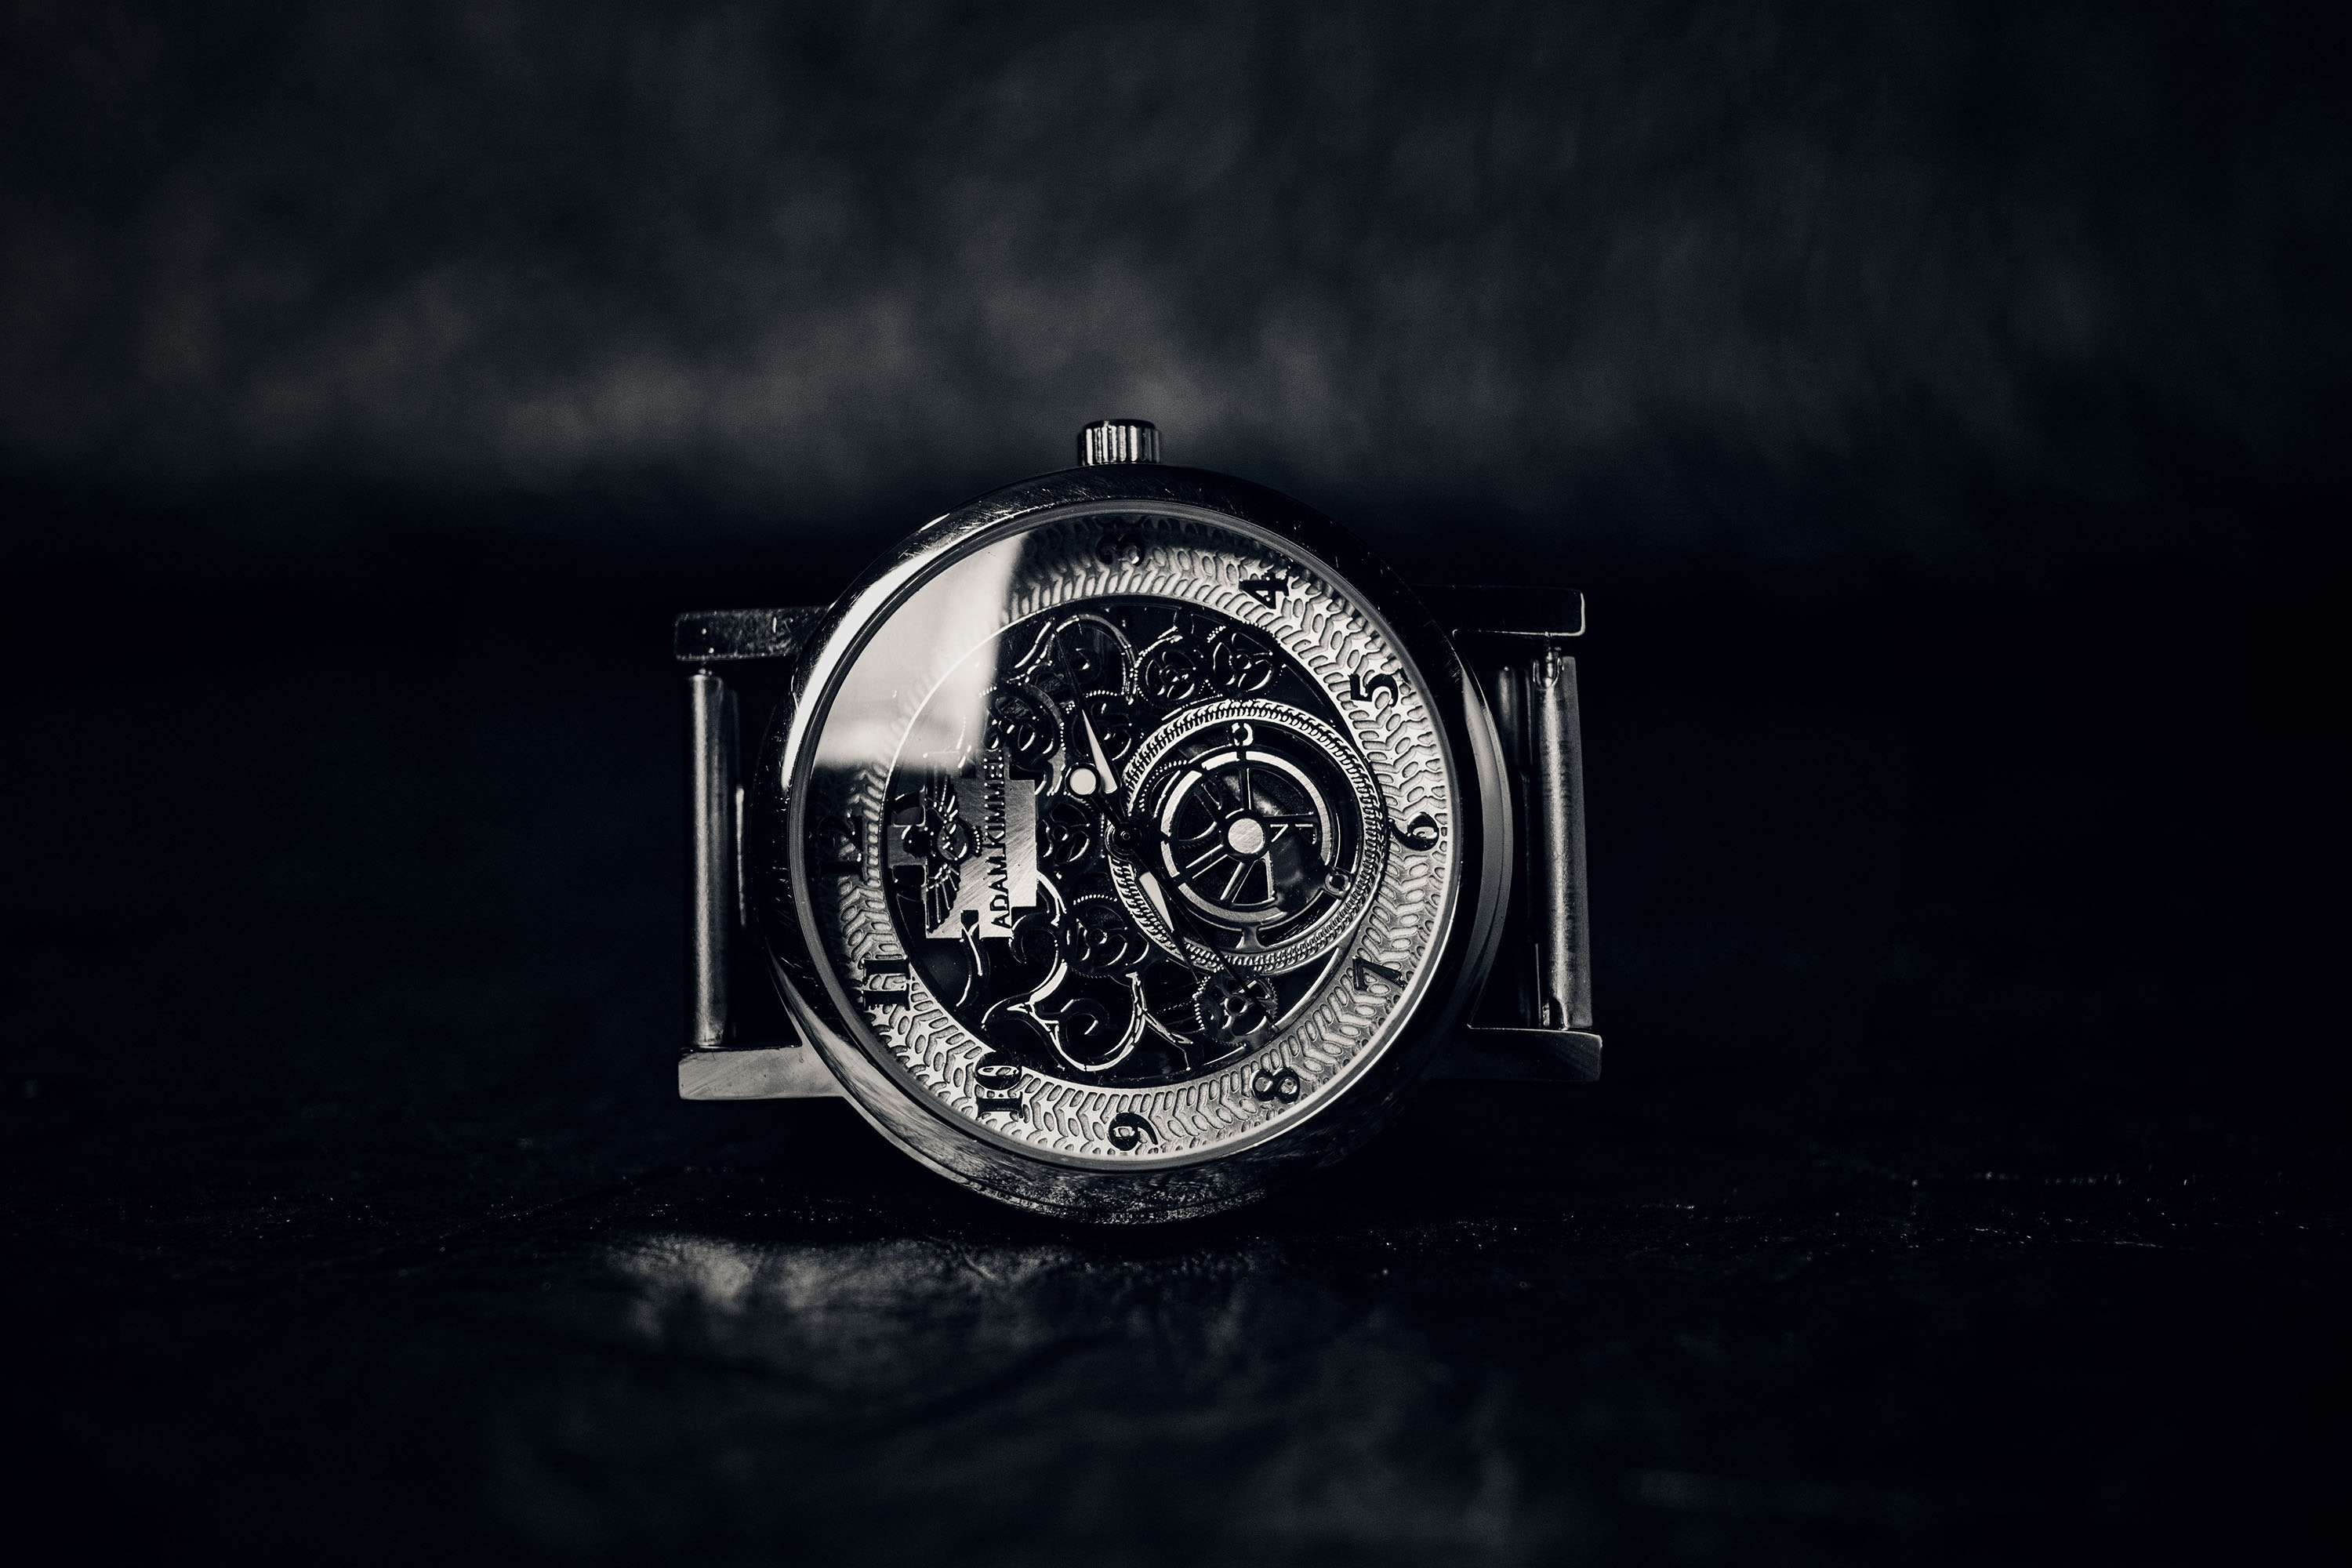 Free Stock Photos Of Watches And Watch Images High Quality That You Can Use For Your Website Business Or As Wallpaper Desktop